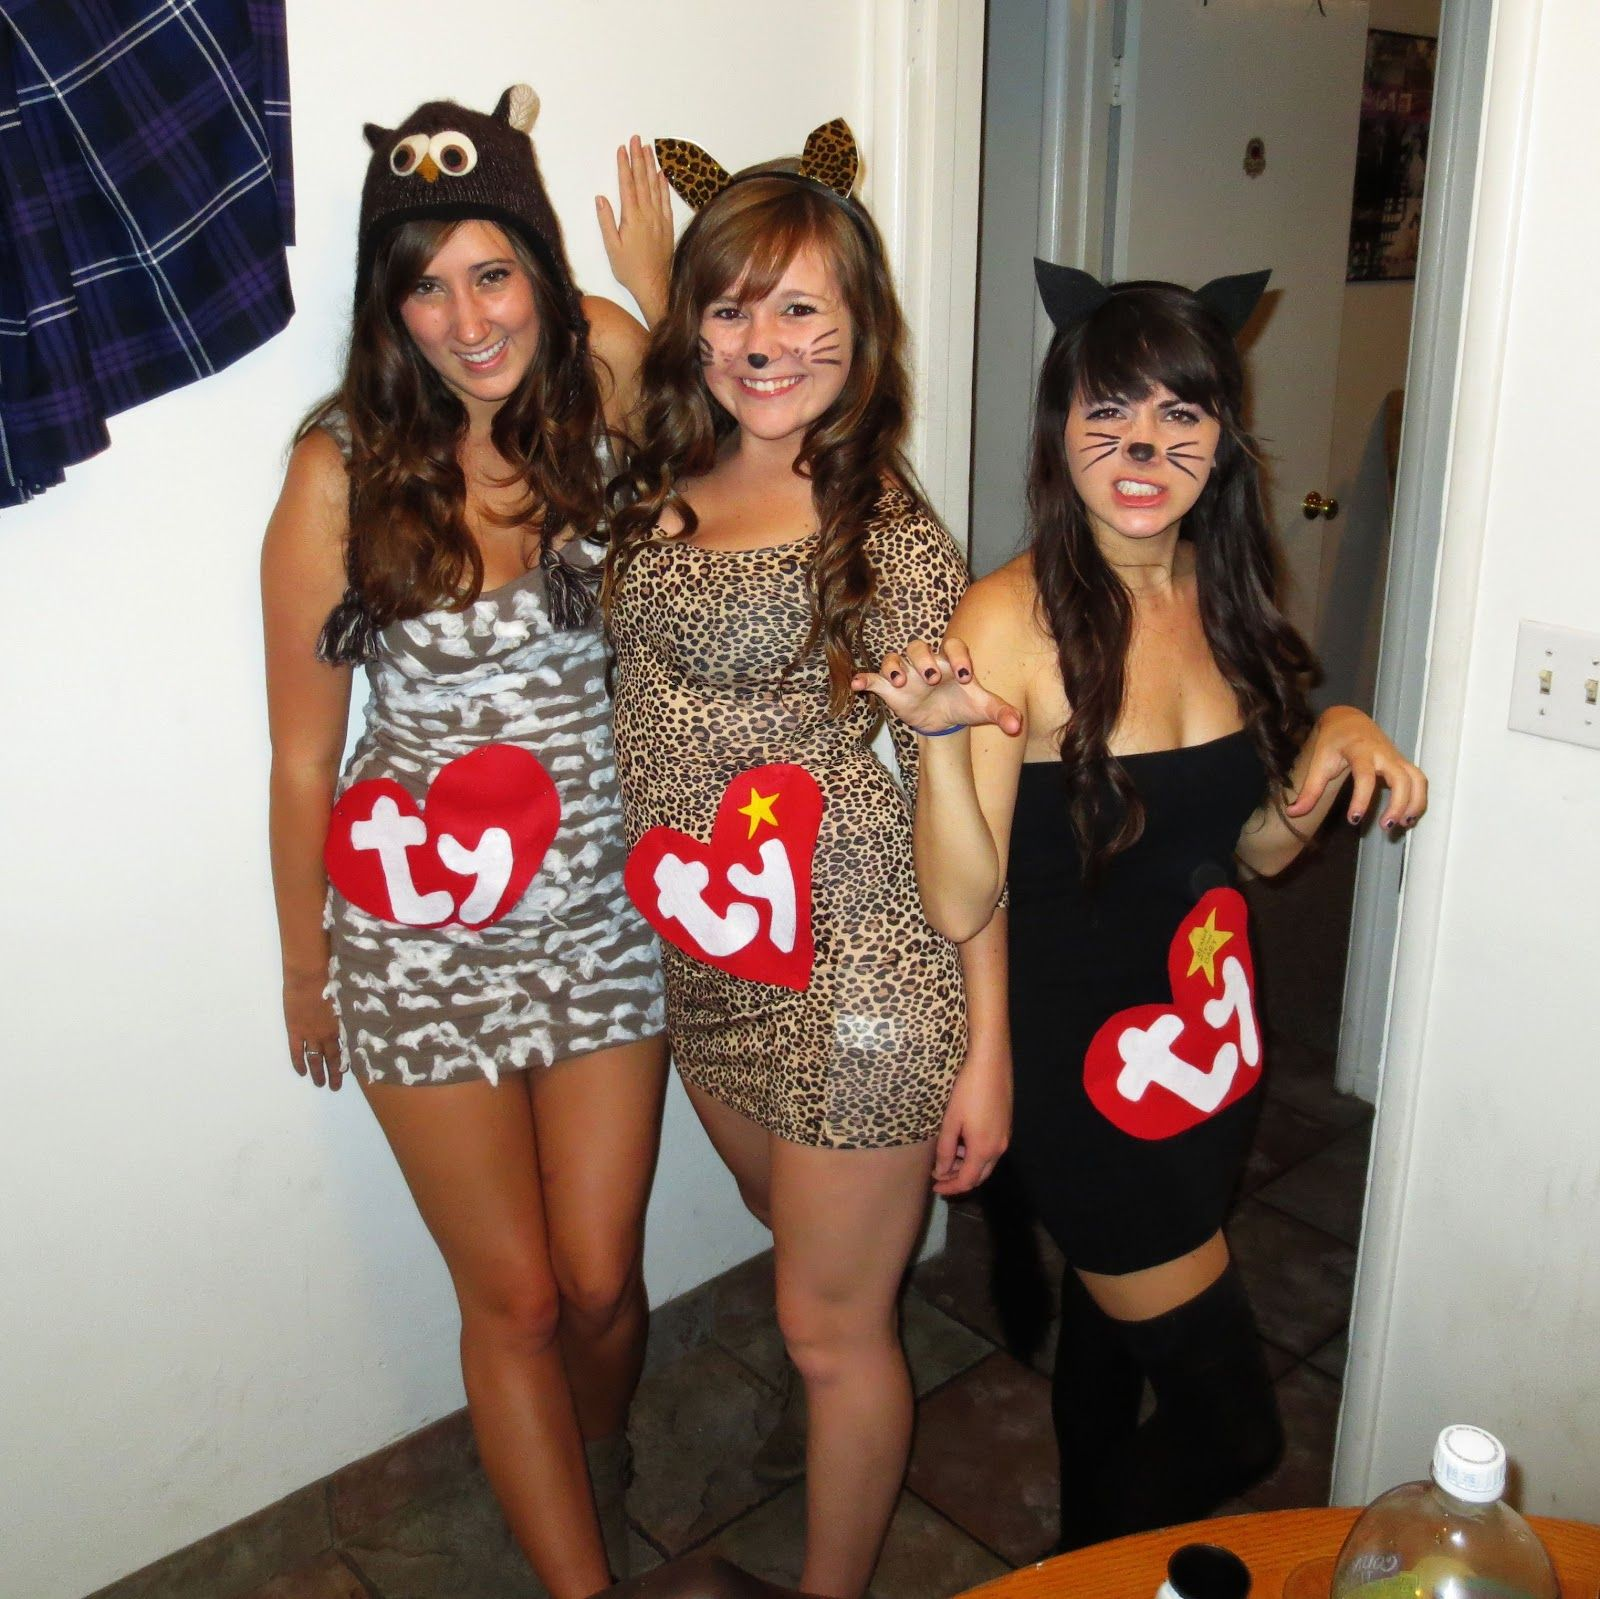 halloween college party 32 easy costumes to copy that are perfect for the college halloween party - by sophia lee find this pin and more on halloween by taylor parenti 15 feminine college party outfits for young fashionistas 4 - 15 feminine college party outfits for young fashionistas (halloween college party.